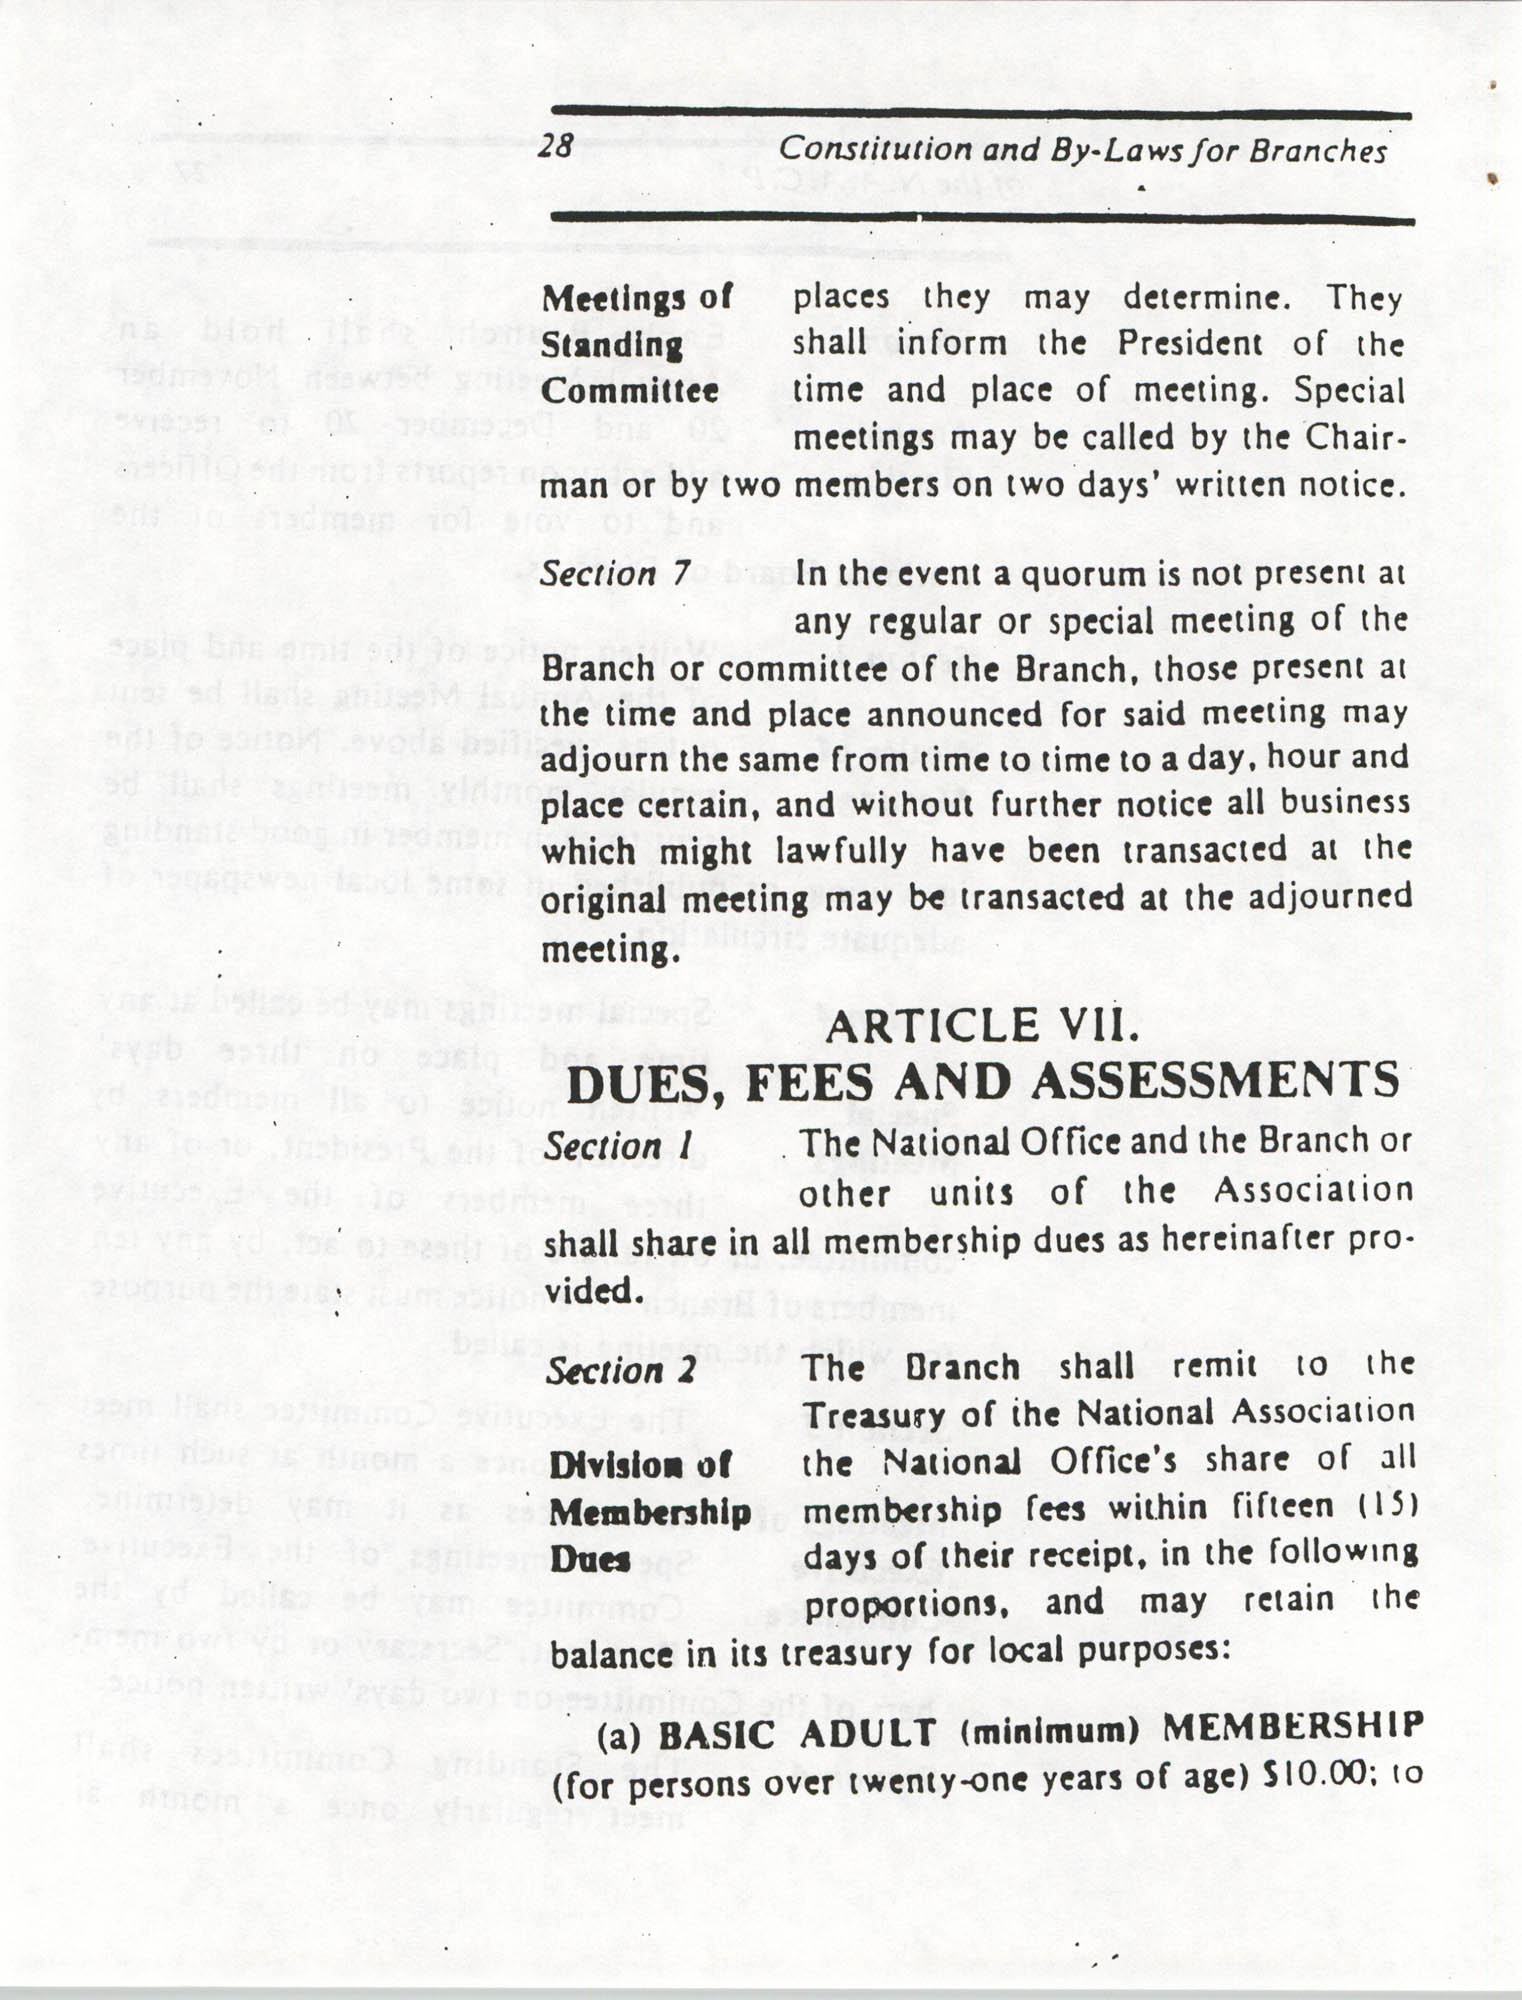 Constitution and By-Laws for Branches of the NAACP, March 1992, Page 28